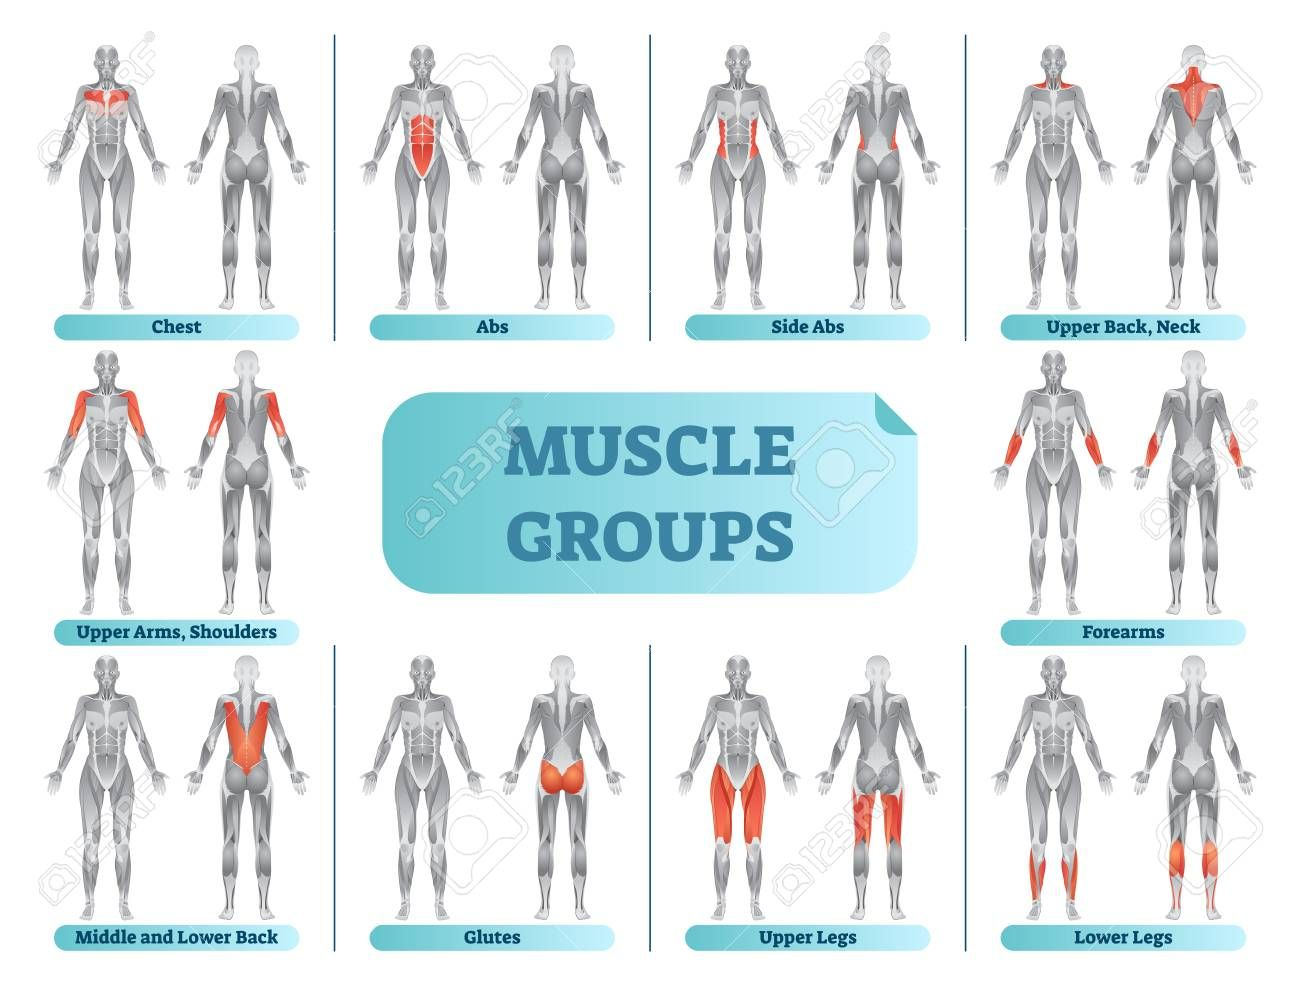 Female muscle groups anatomical fitness vector illustration, sports training informative chart. ,